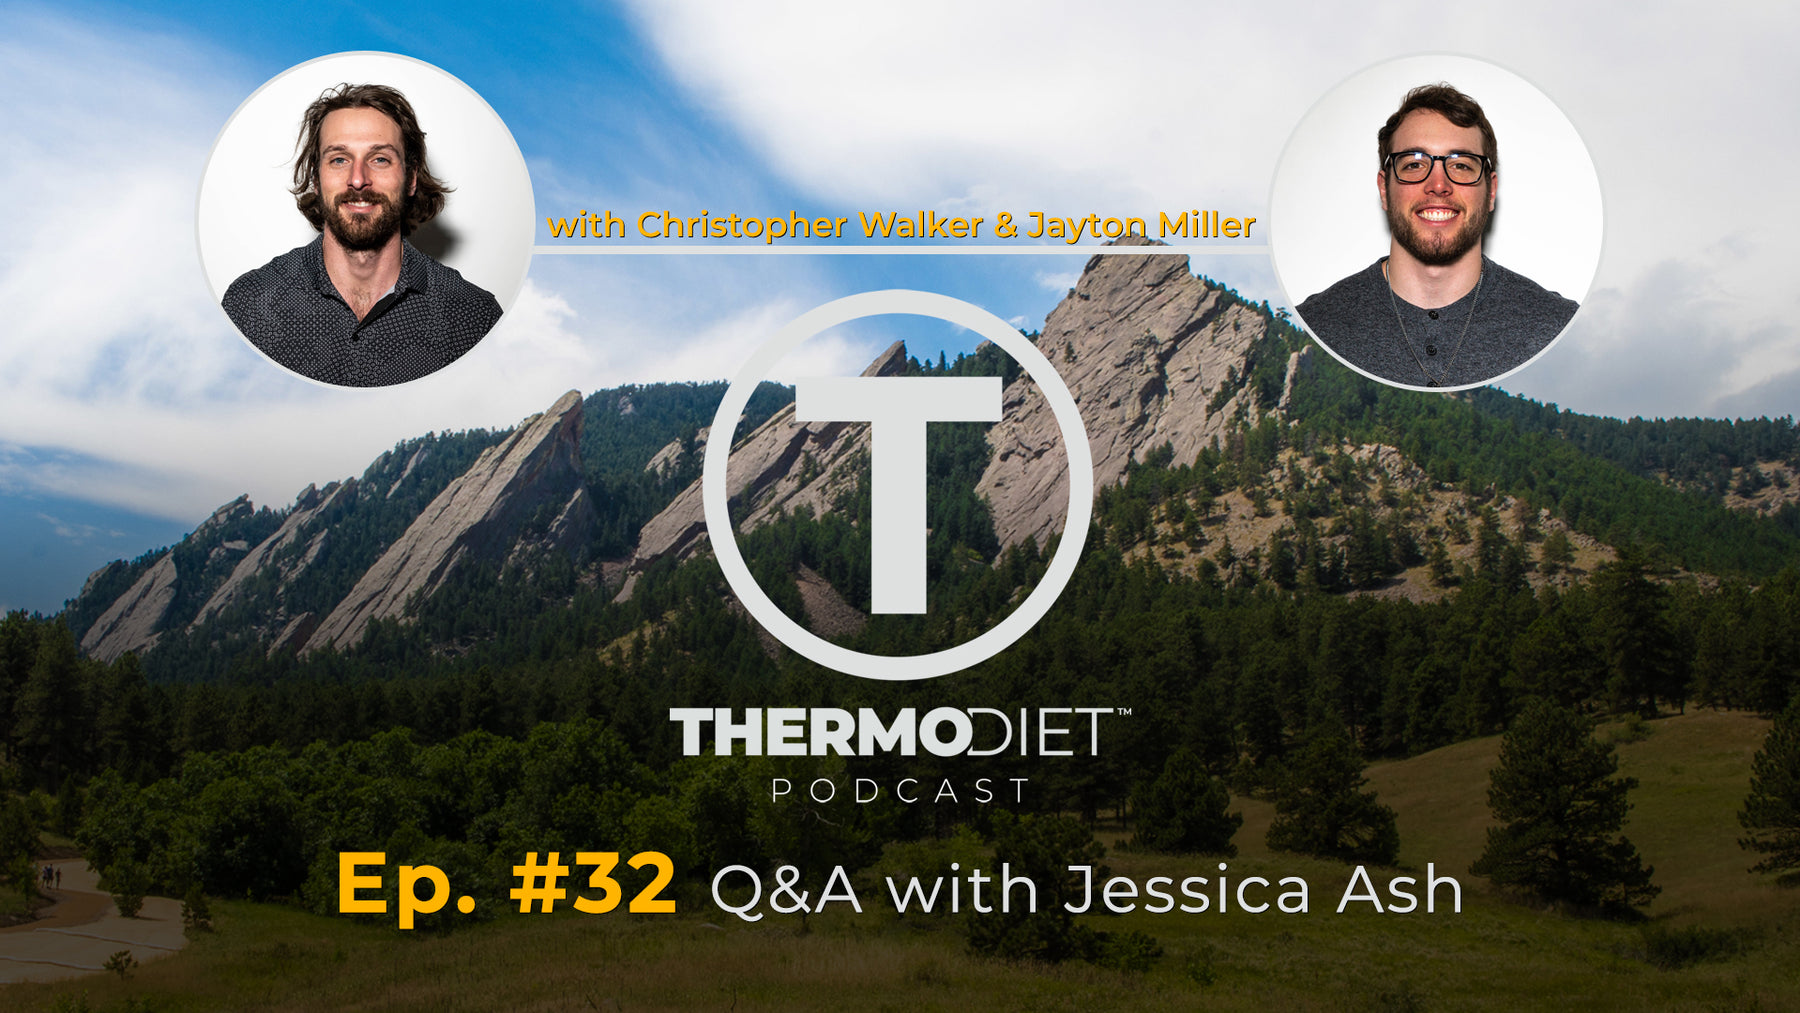 Thermo Diet Podcast Episode 32 - Jessica Ash